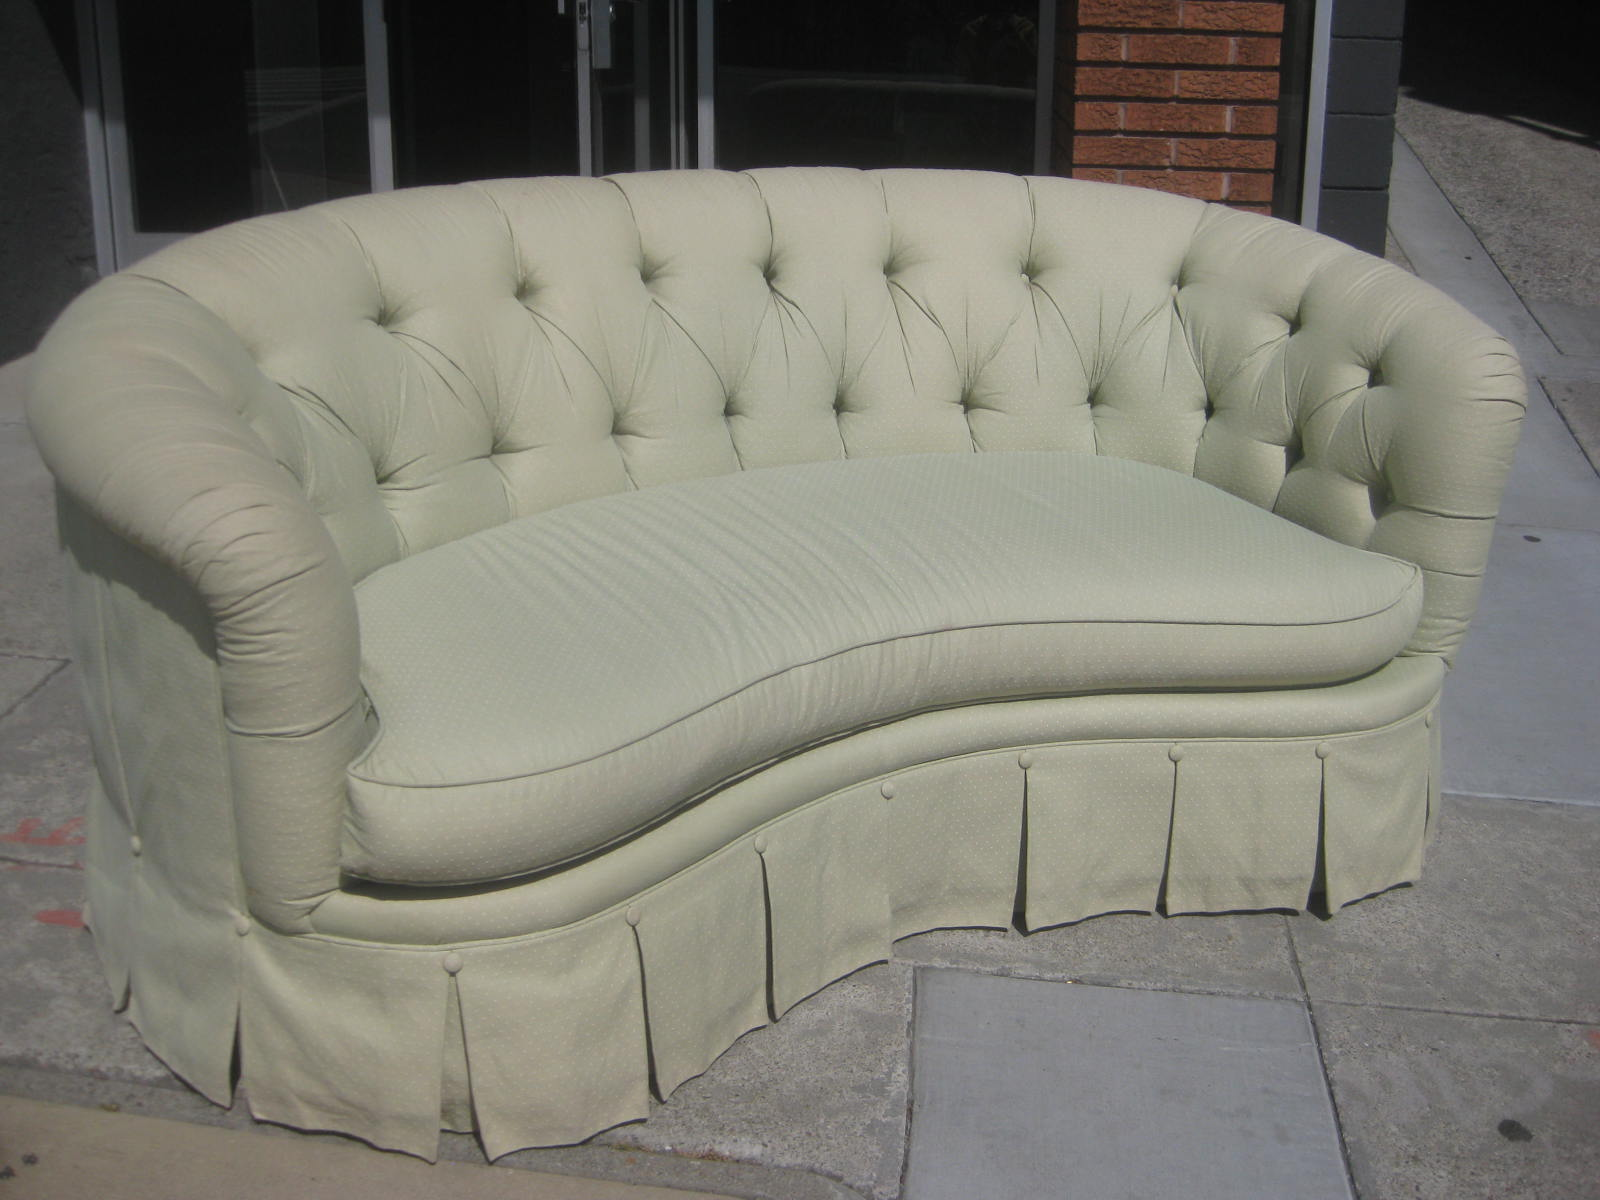 Couch Shabby Chic Uhuru Furniture Collectibles Sold Shabby Chic Couch 100